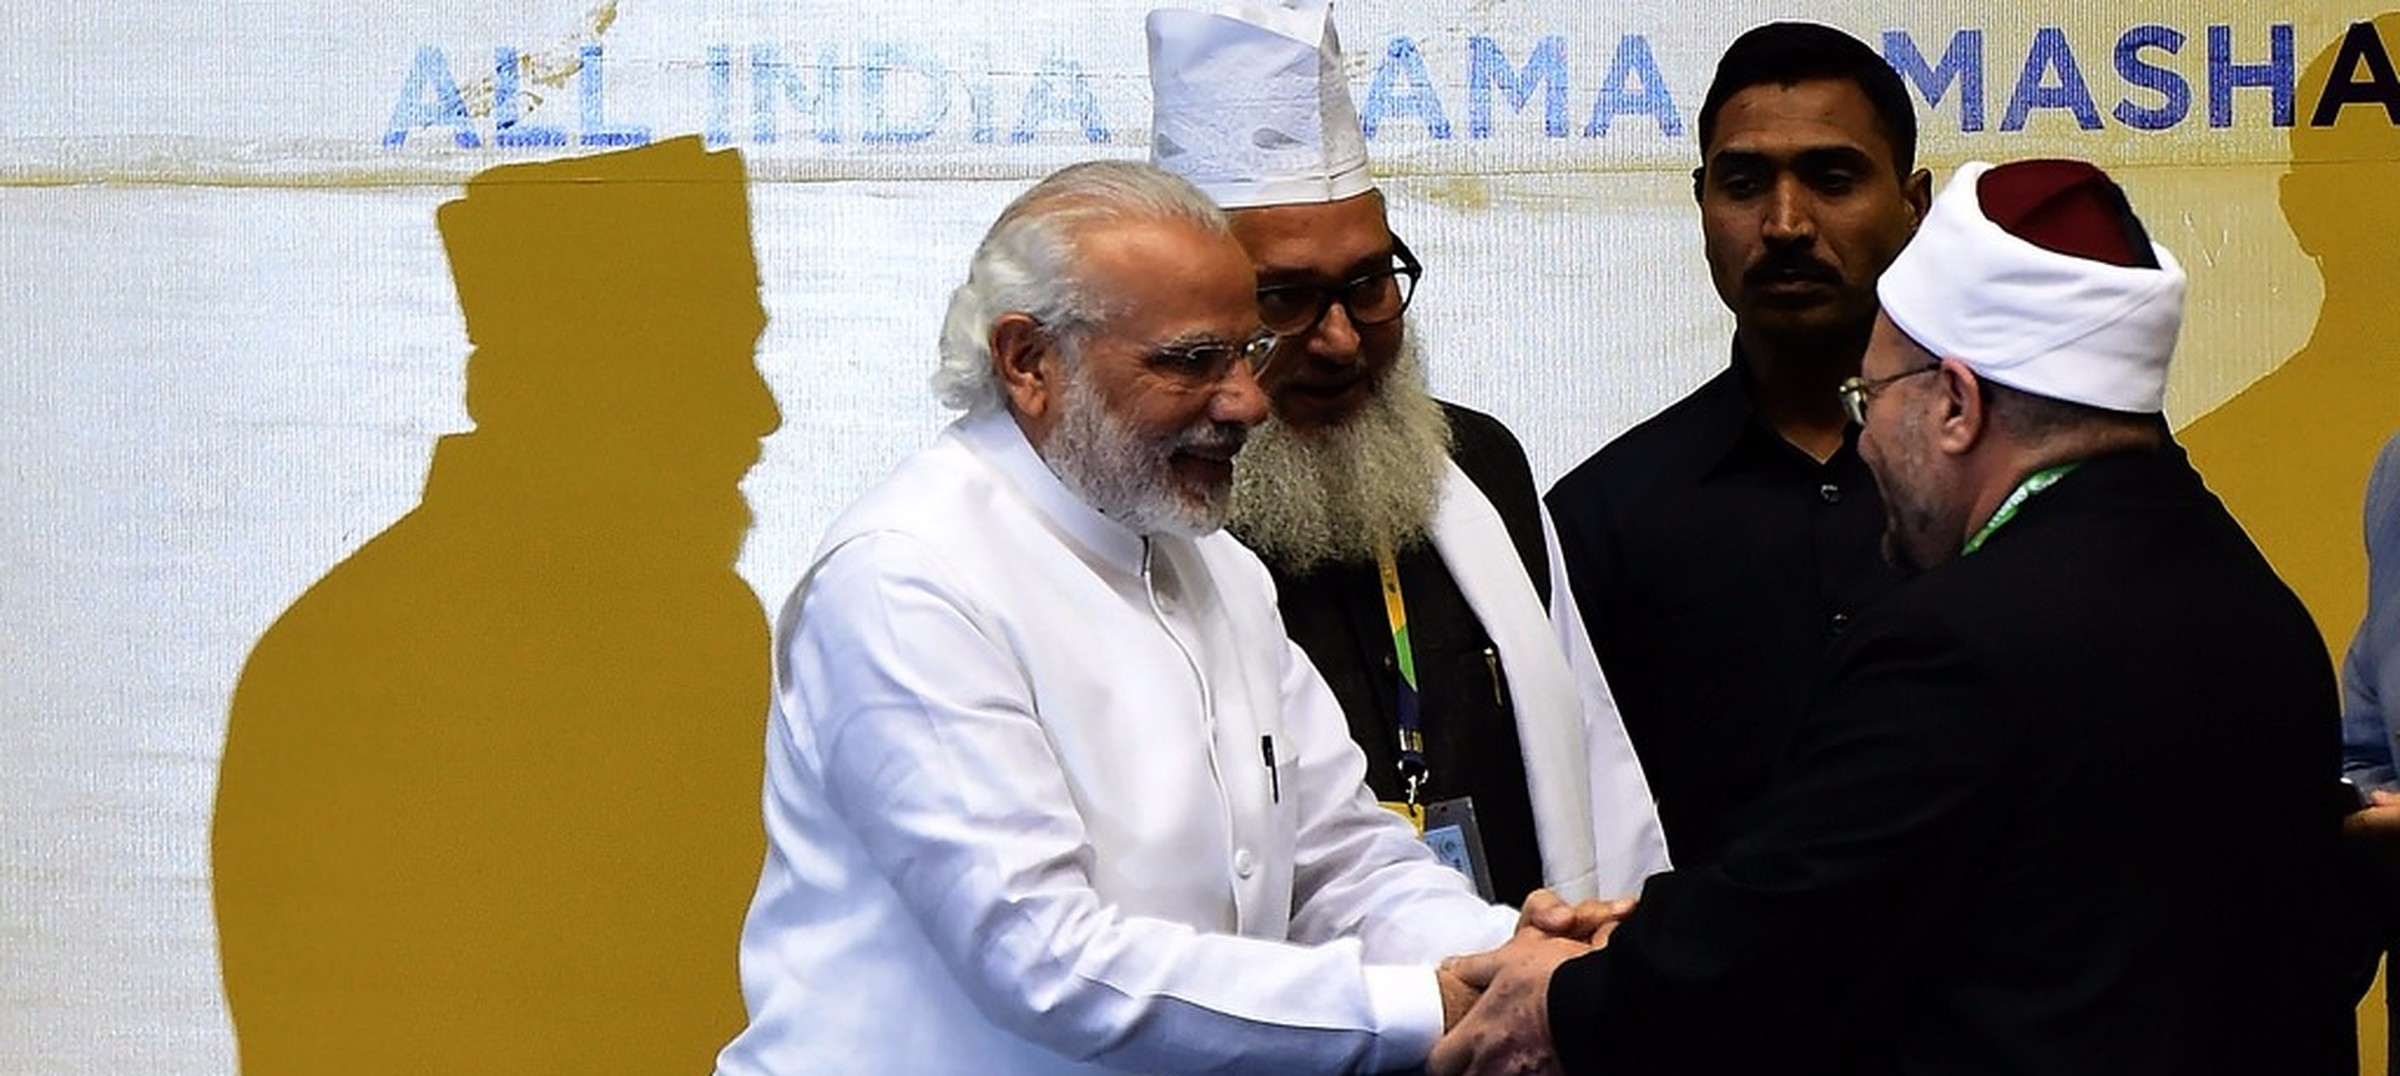 The parameters of Modi's Muslim outreach are finally becoming clear